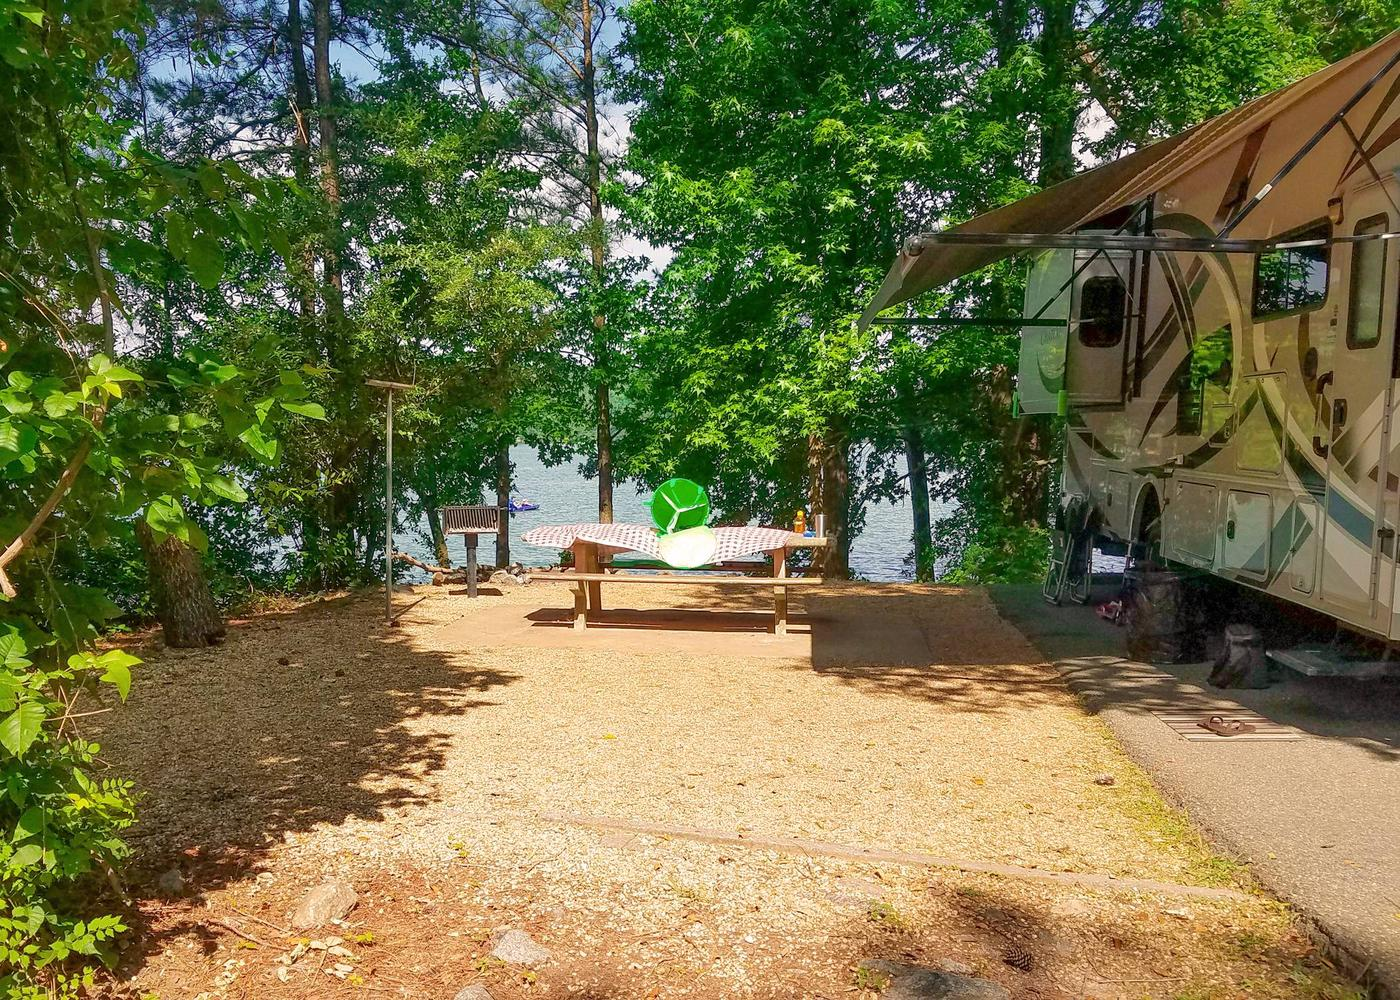 Awning-side clearance, campsite view.Victoria Campground, campsite 21.